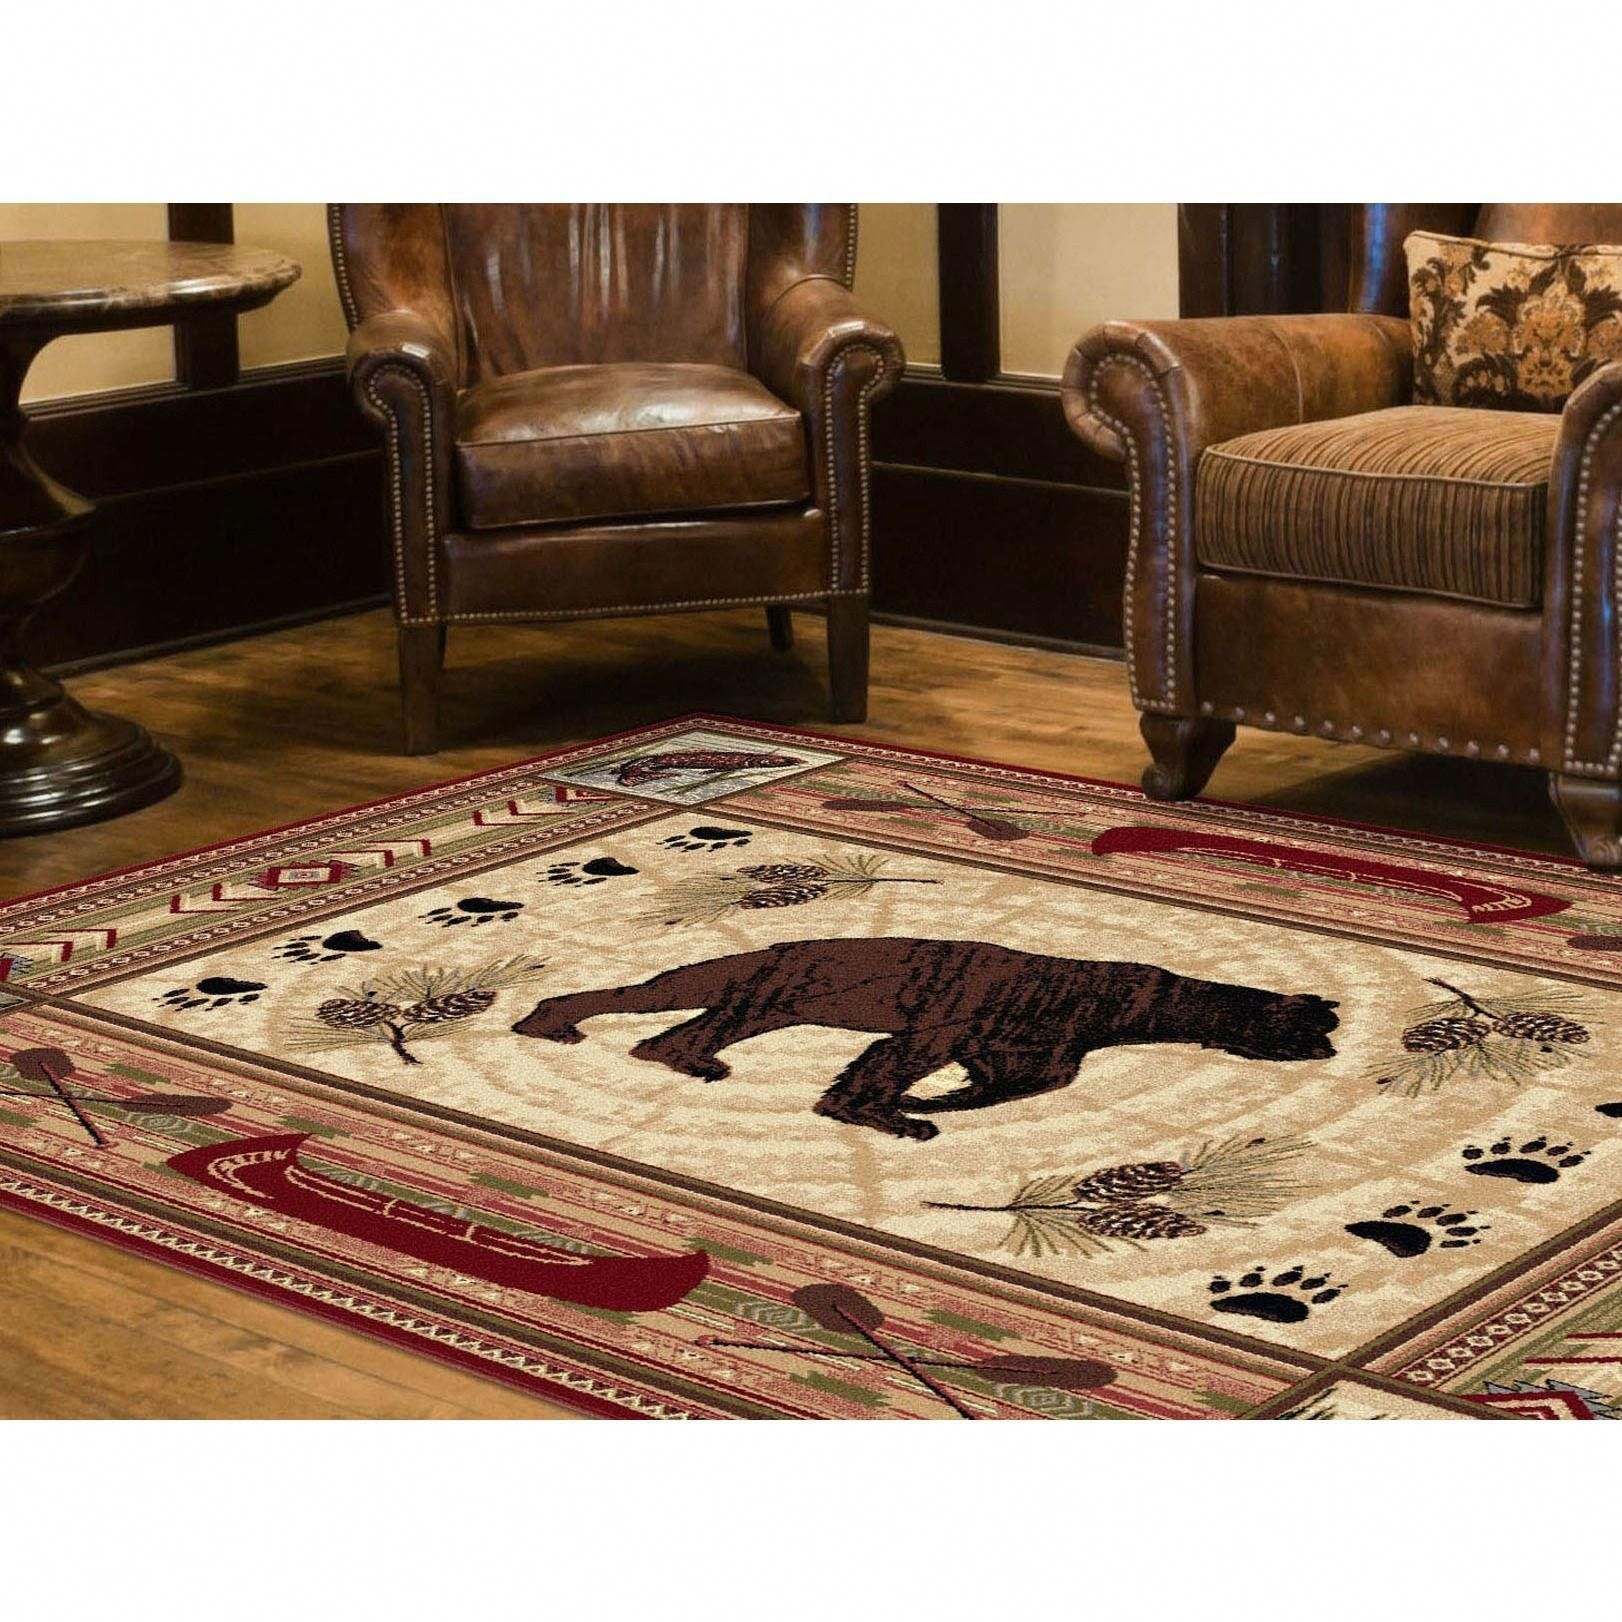 This Unique Nature Themed Area Rug Is Machine Woven Using Durable